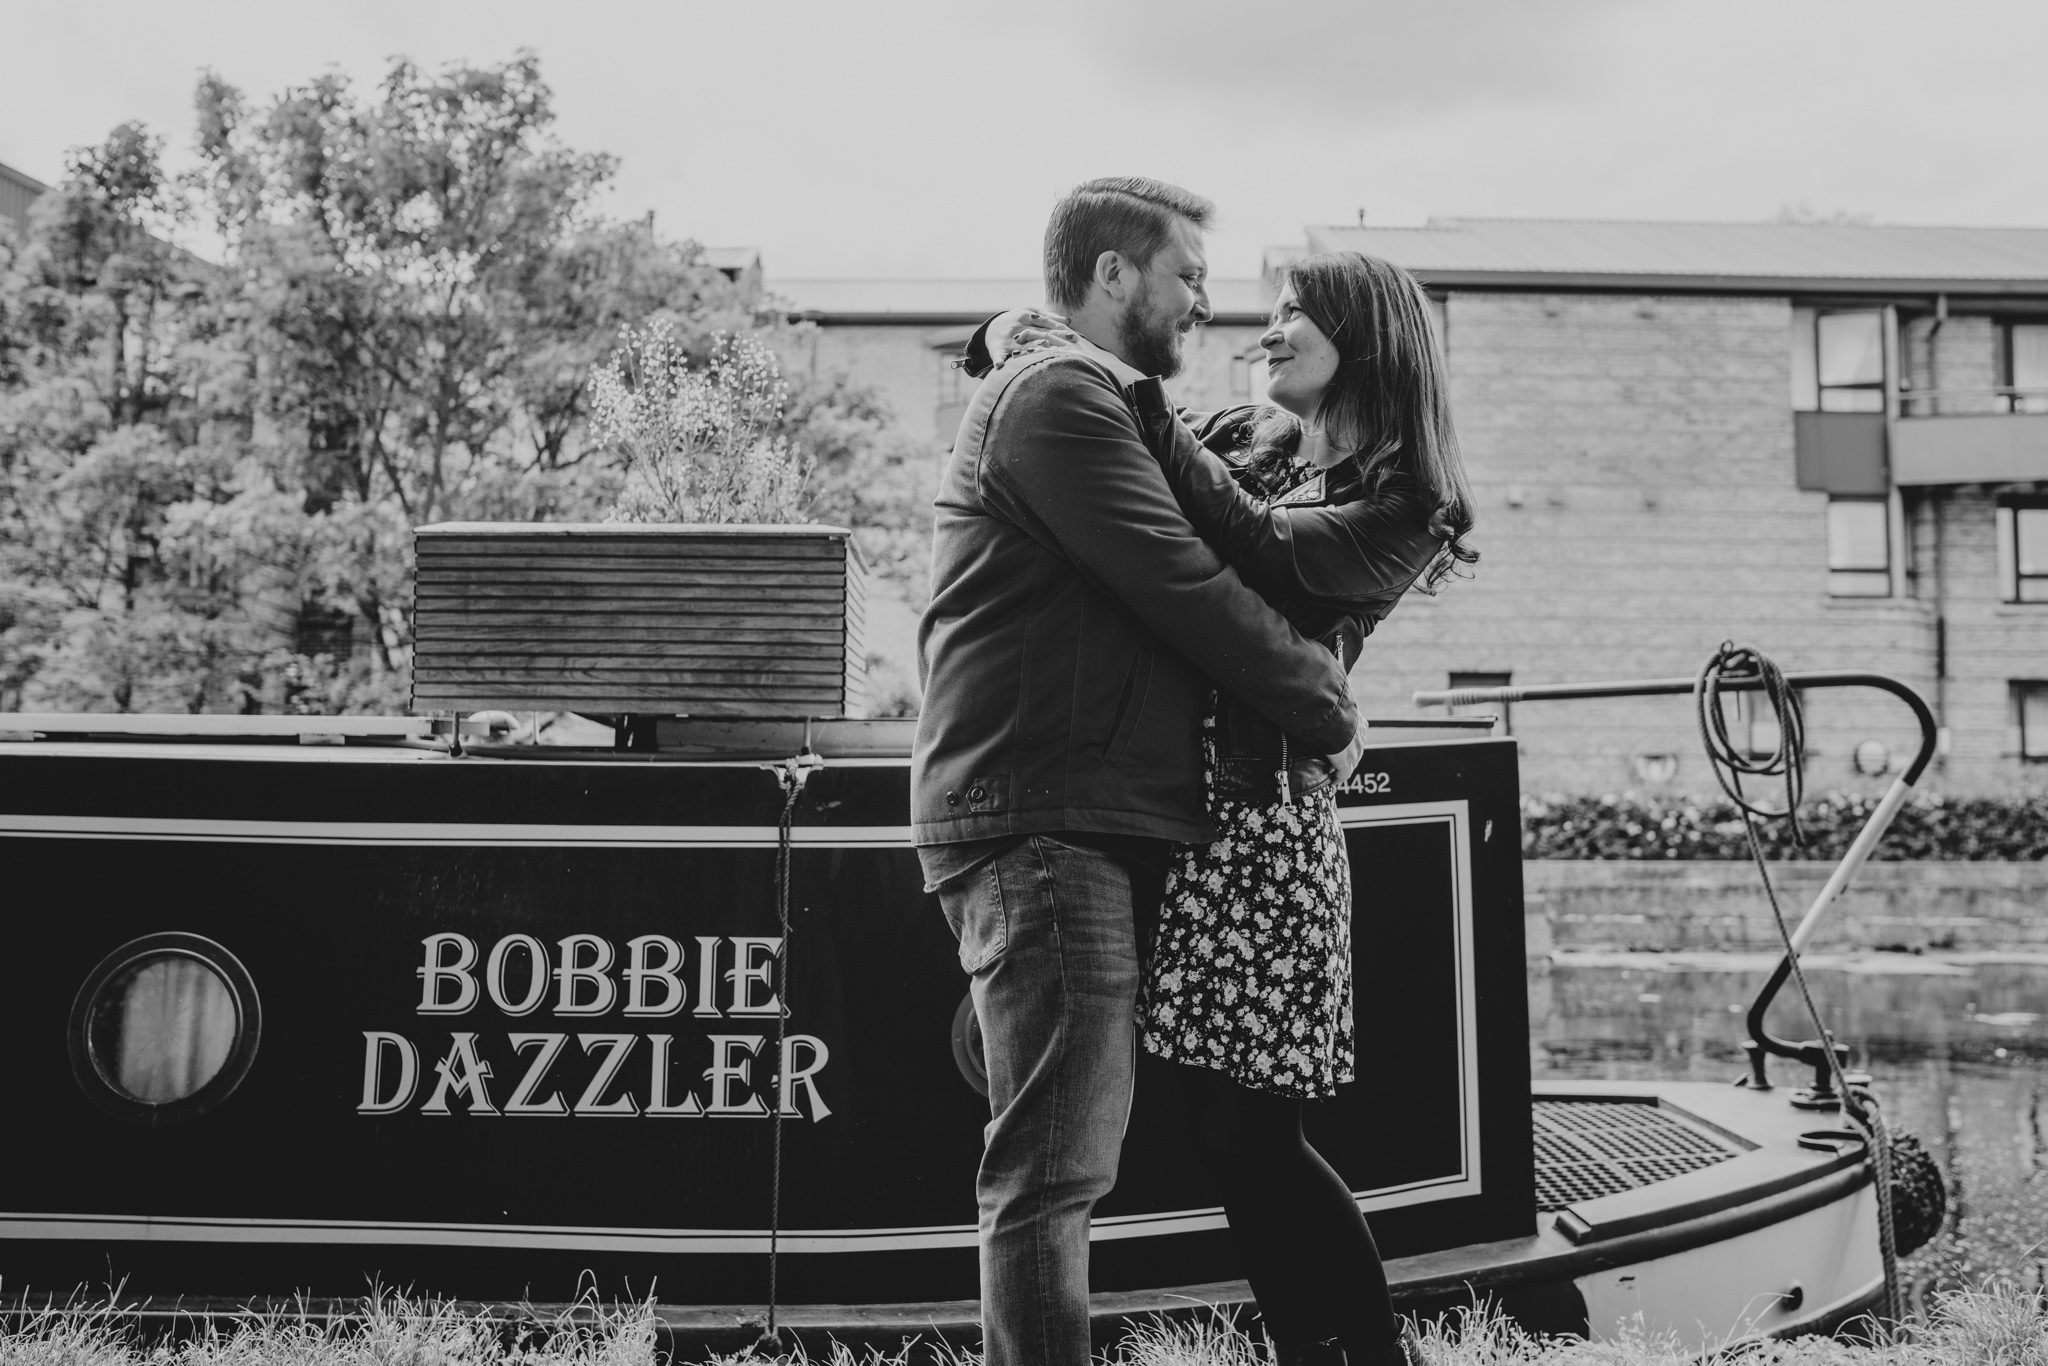 natalie-john-urban-london-engagement-grace-elizabeth-colchester-essex-alternative-wedding-photographer-essex-suffolk-norfolk-devon (7 of 66).jpg